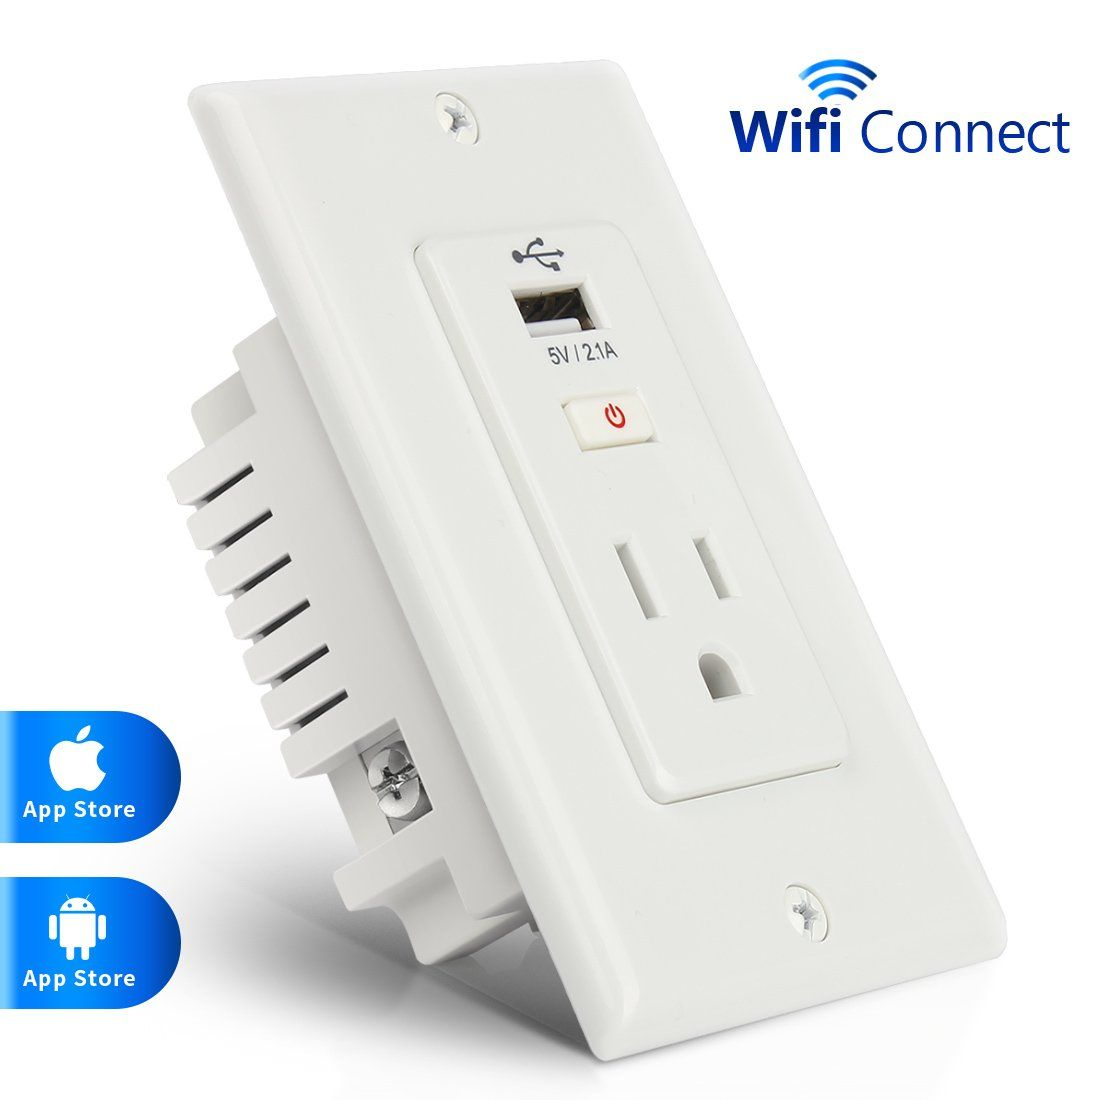 Alexa Wireless Mini Smart Plug Outlet Lookie Timer Socket How To Wire A Light Switch Remote With Usb Port Support Voice Control And No Hub